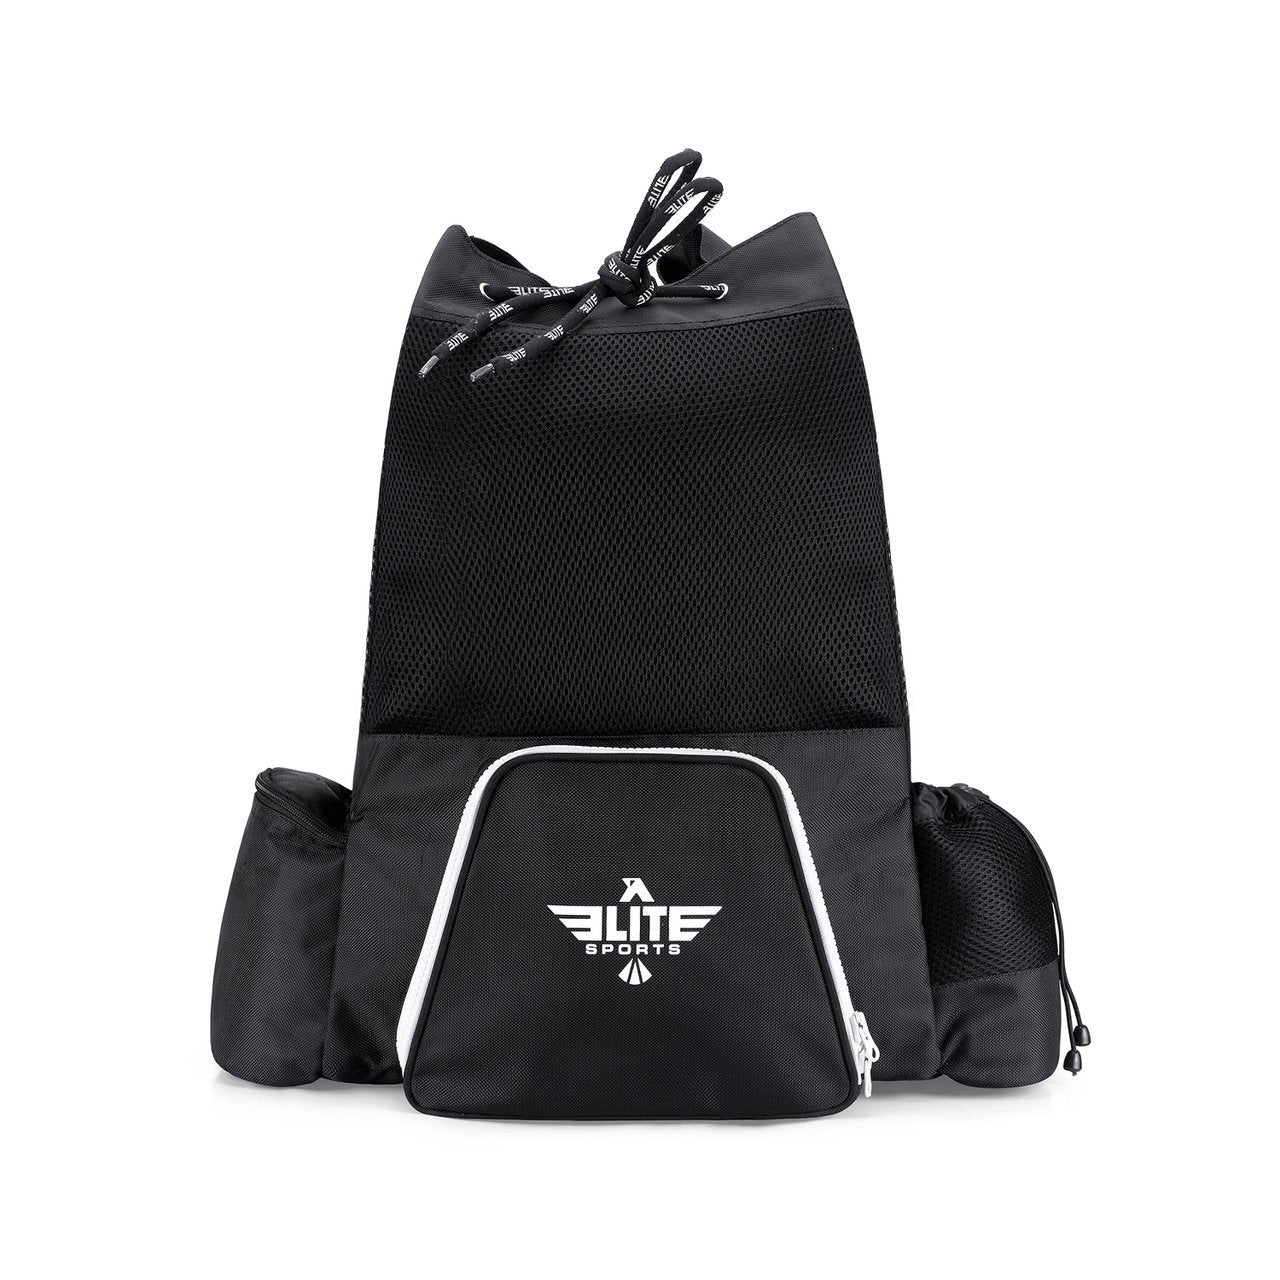 Load image into Gallery viewer, Elite Sports Mesh Black Medium Judo Gear Gym Bag & Backpack